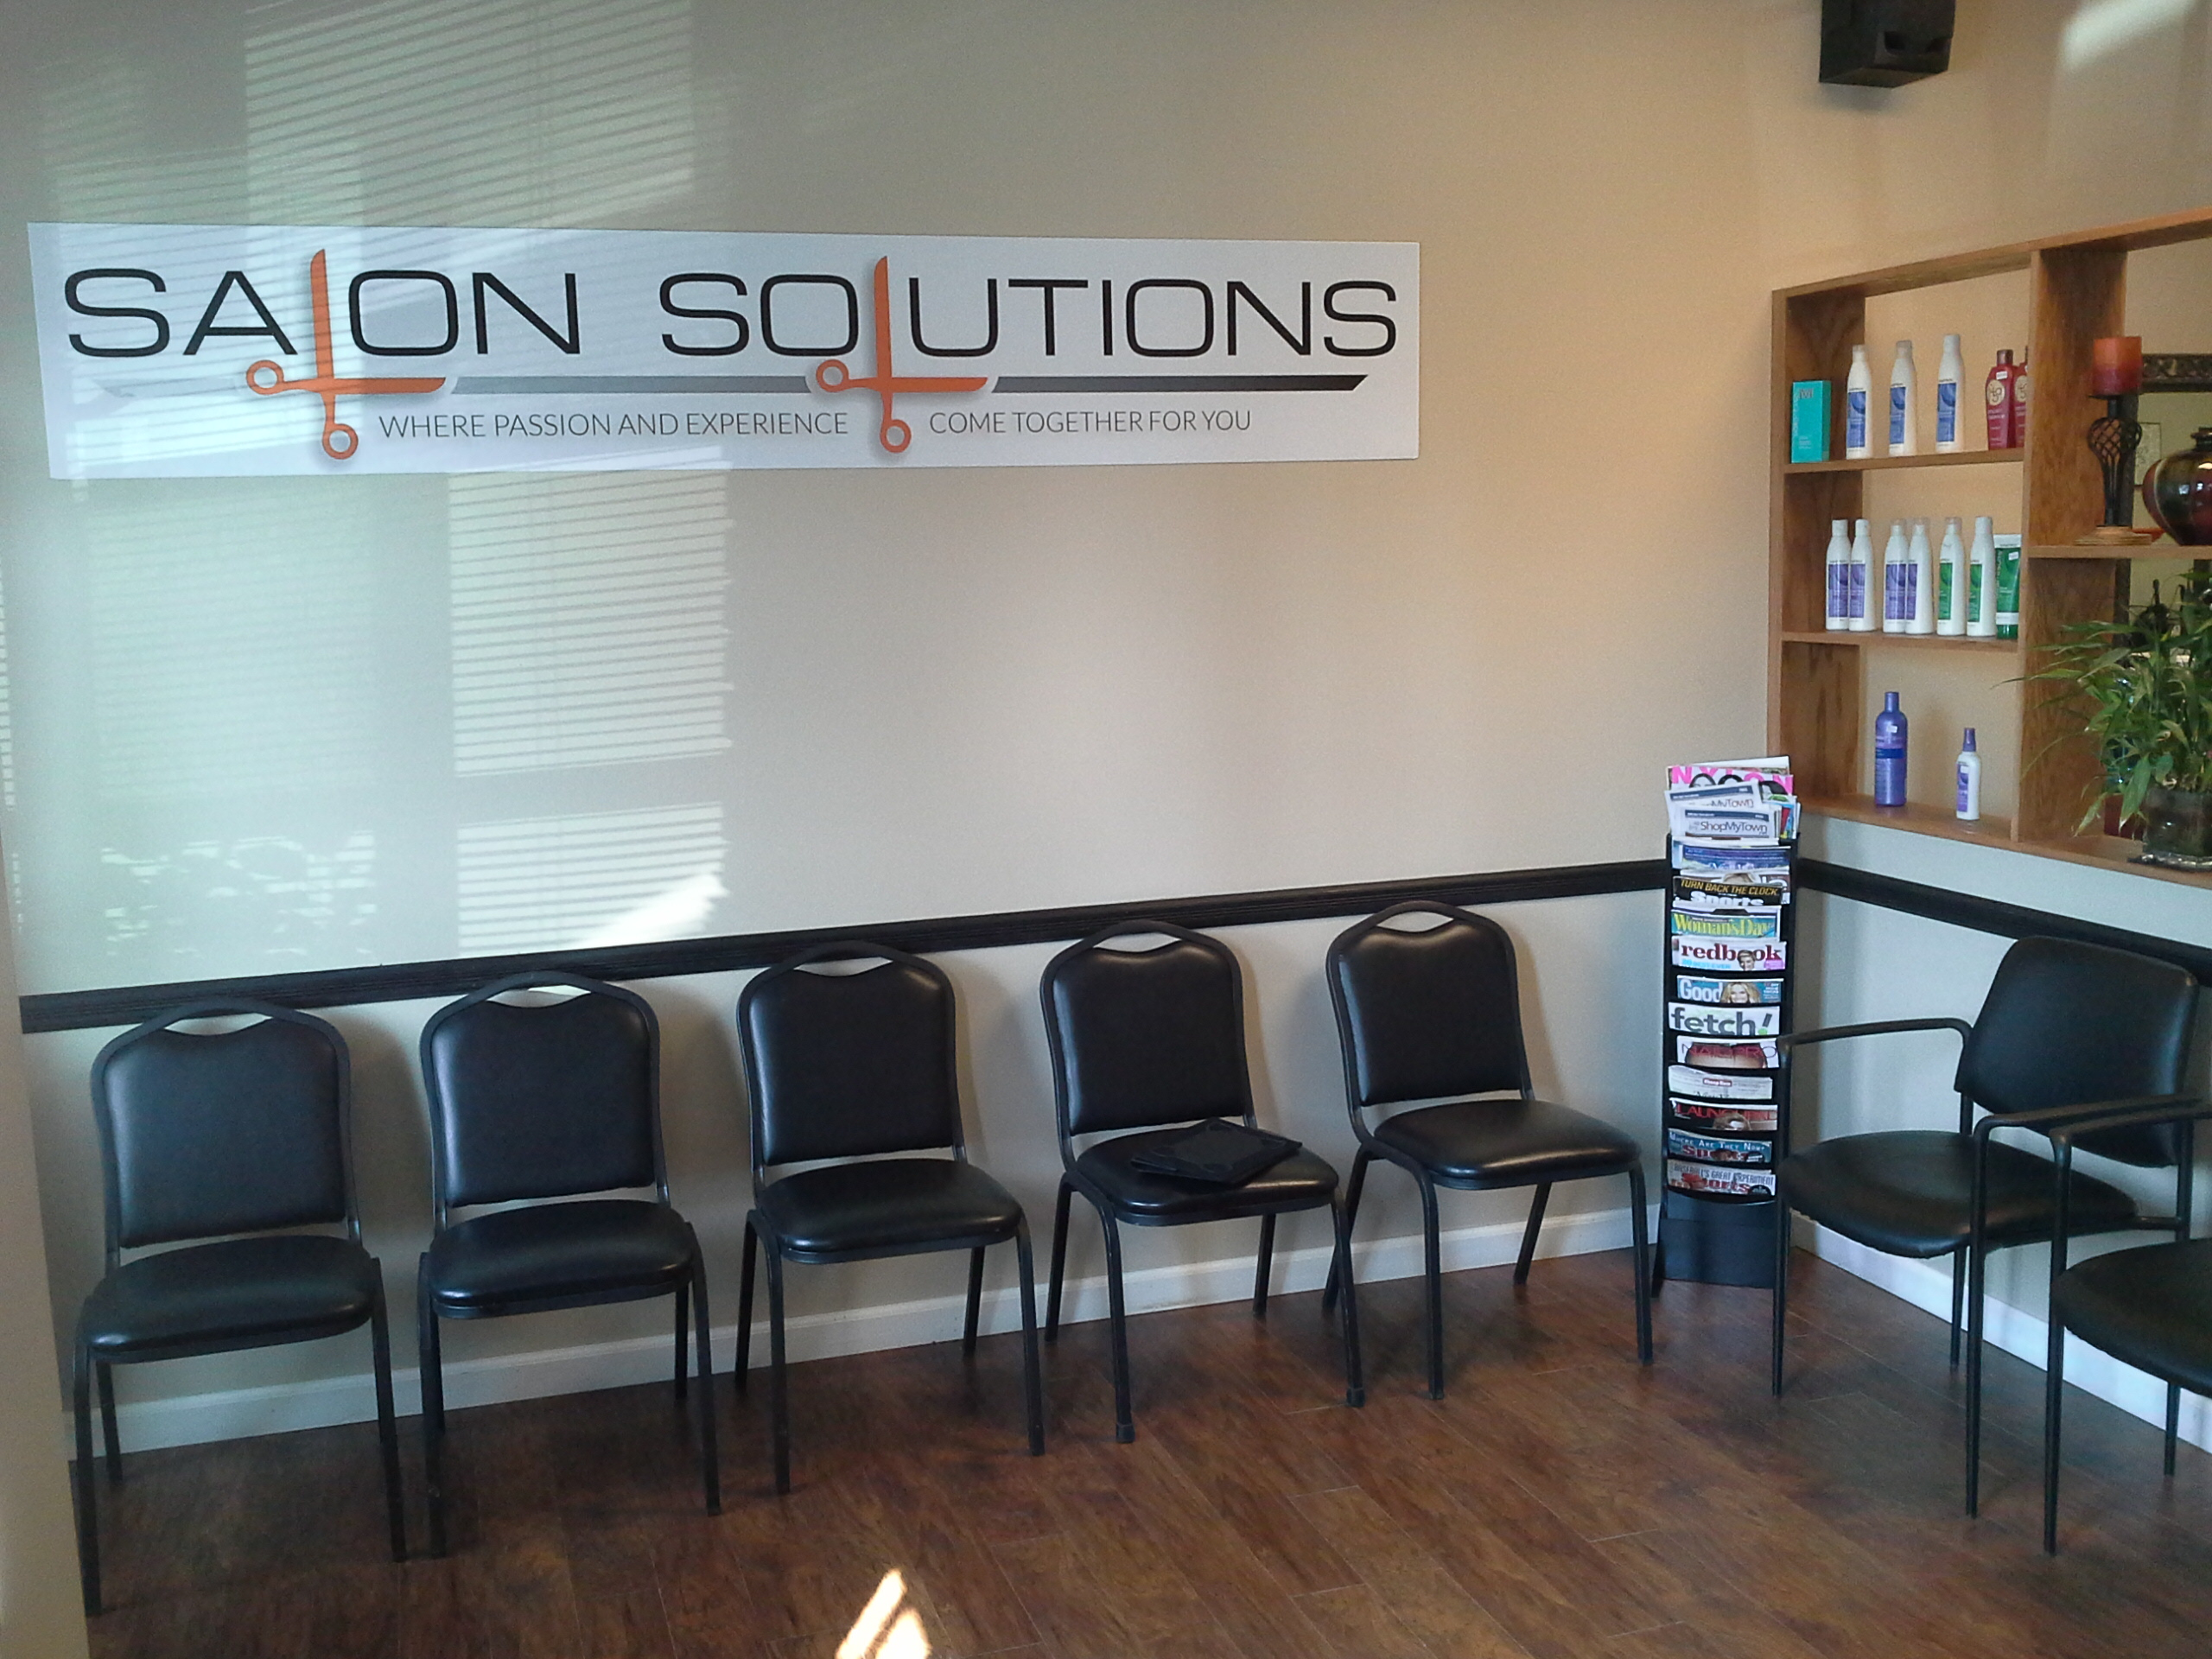 Salon solutions toms river new jersey nj for Salon solutions